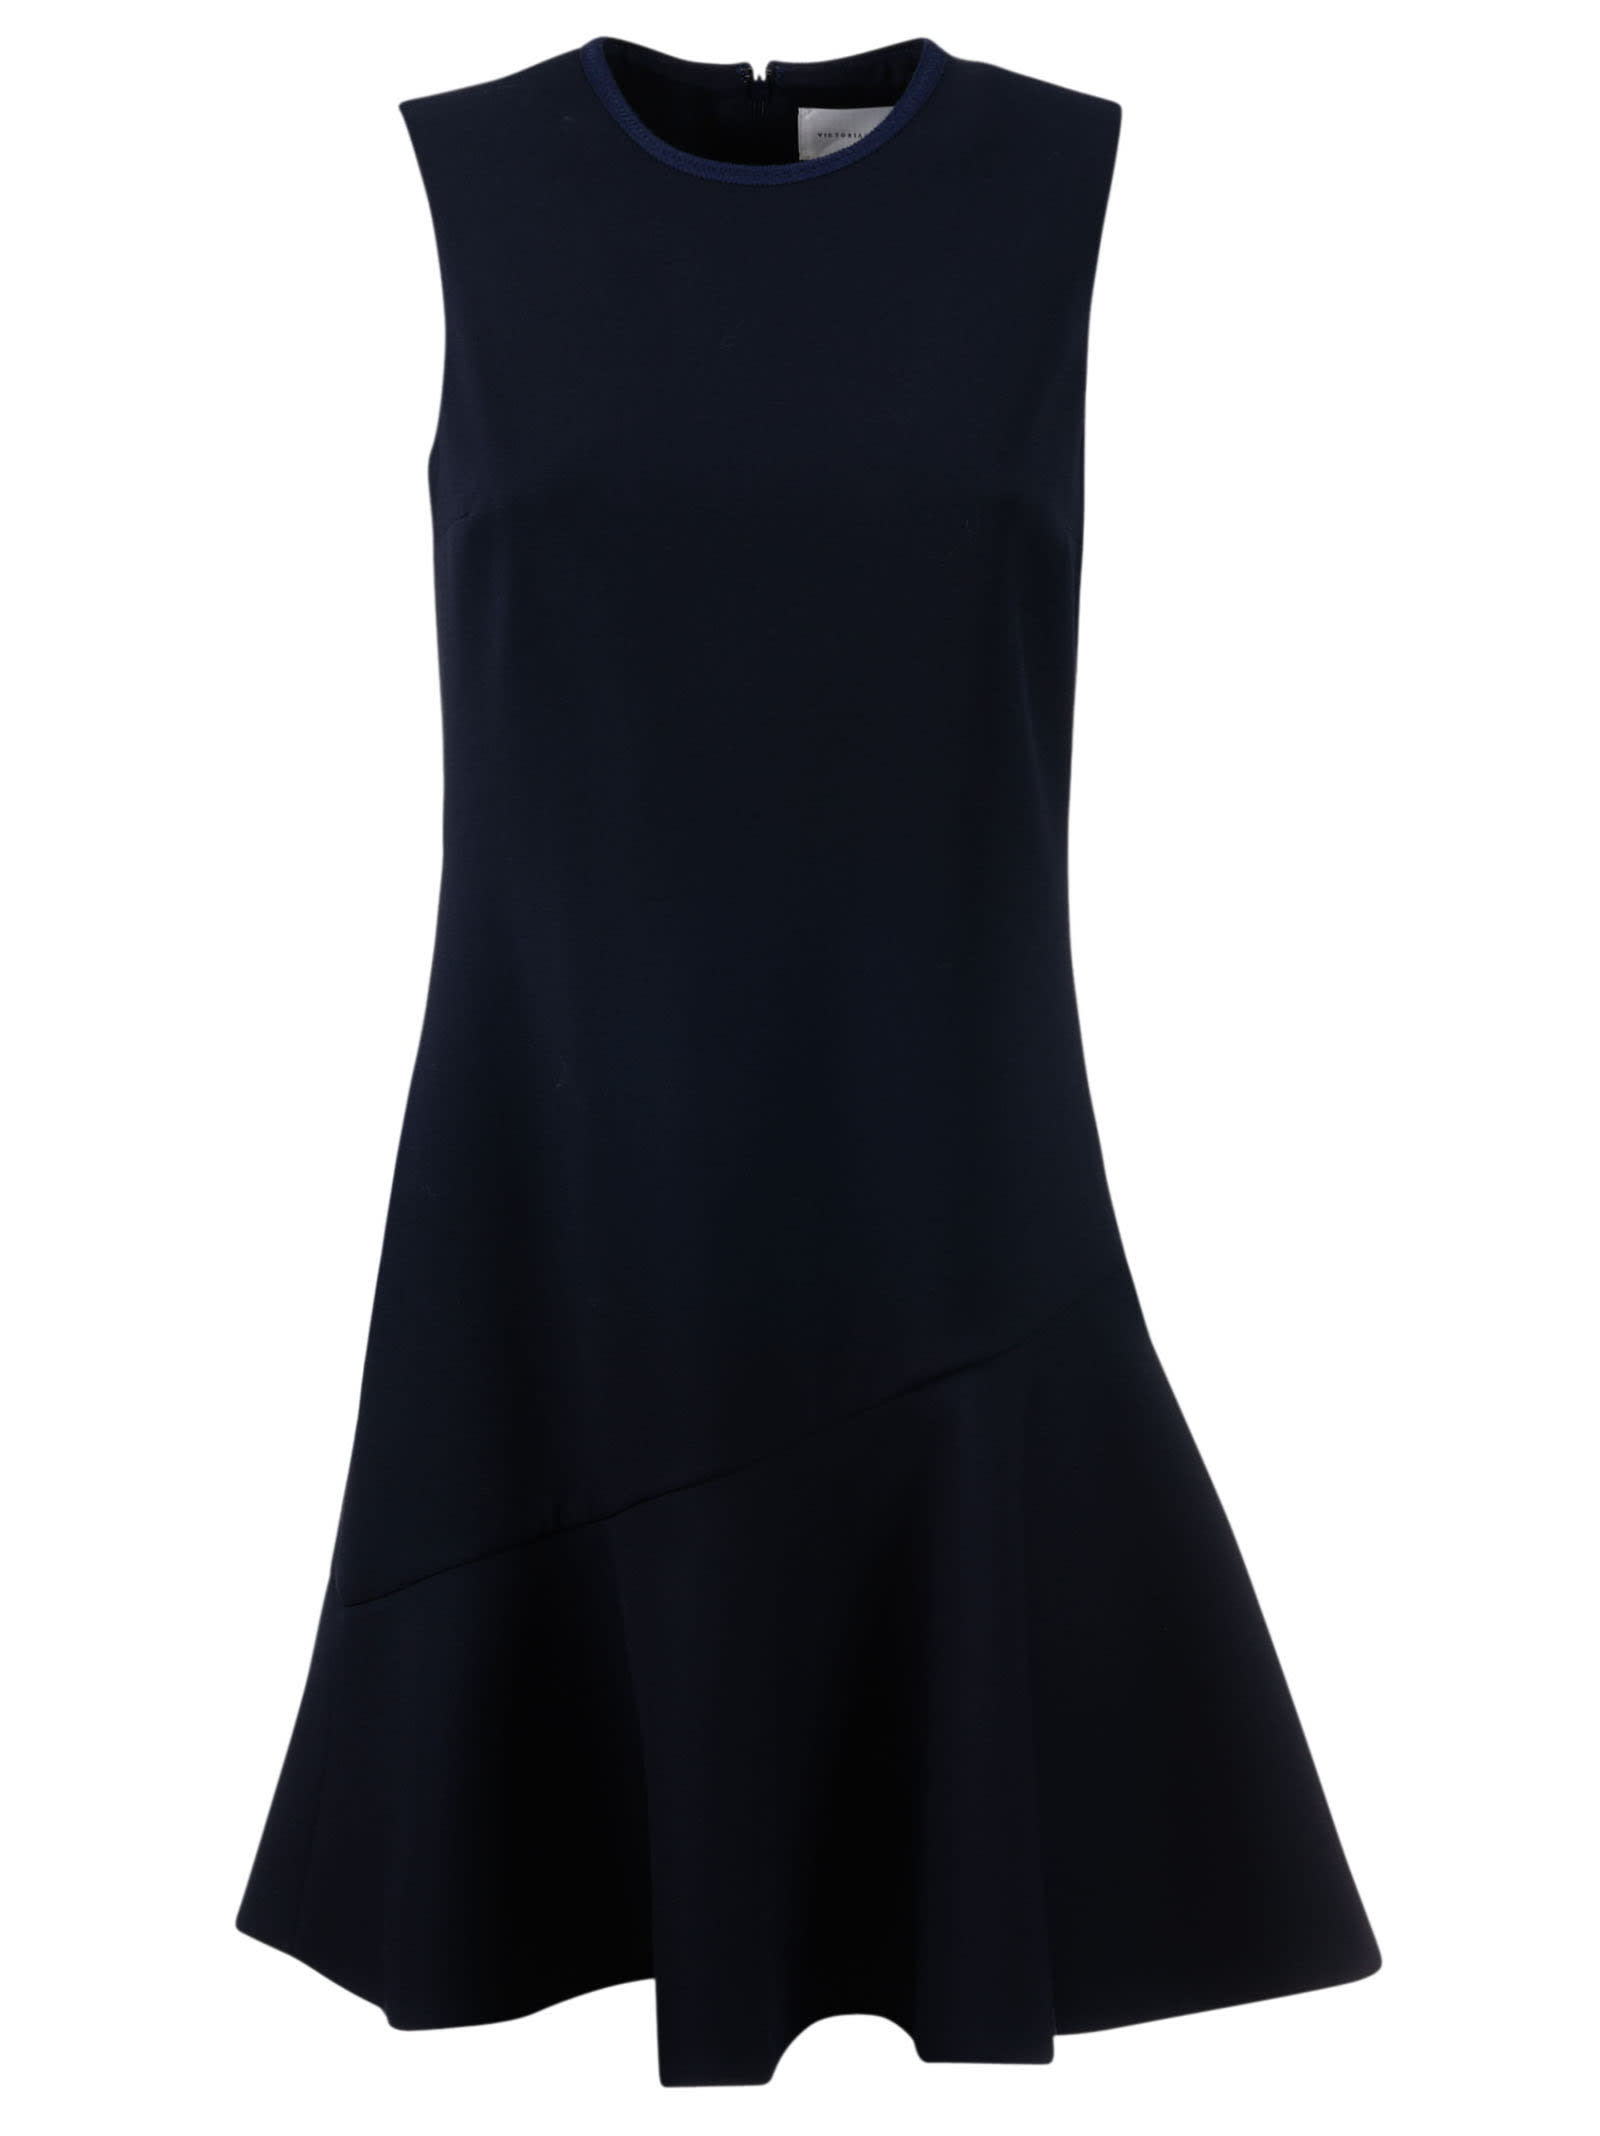 Victoria Beckham Flounce Shift Dress